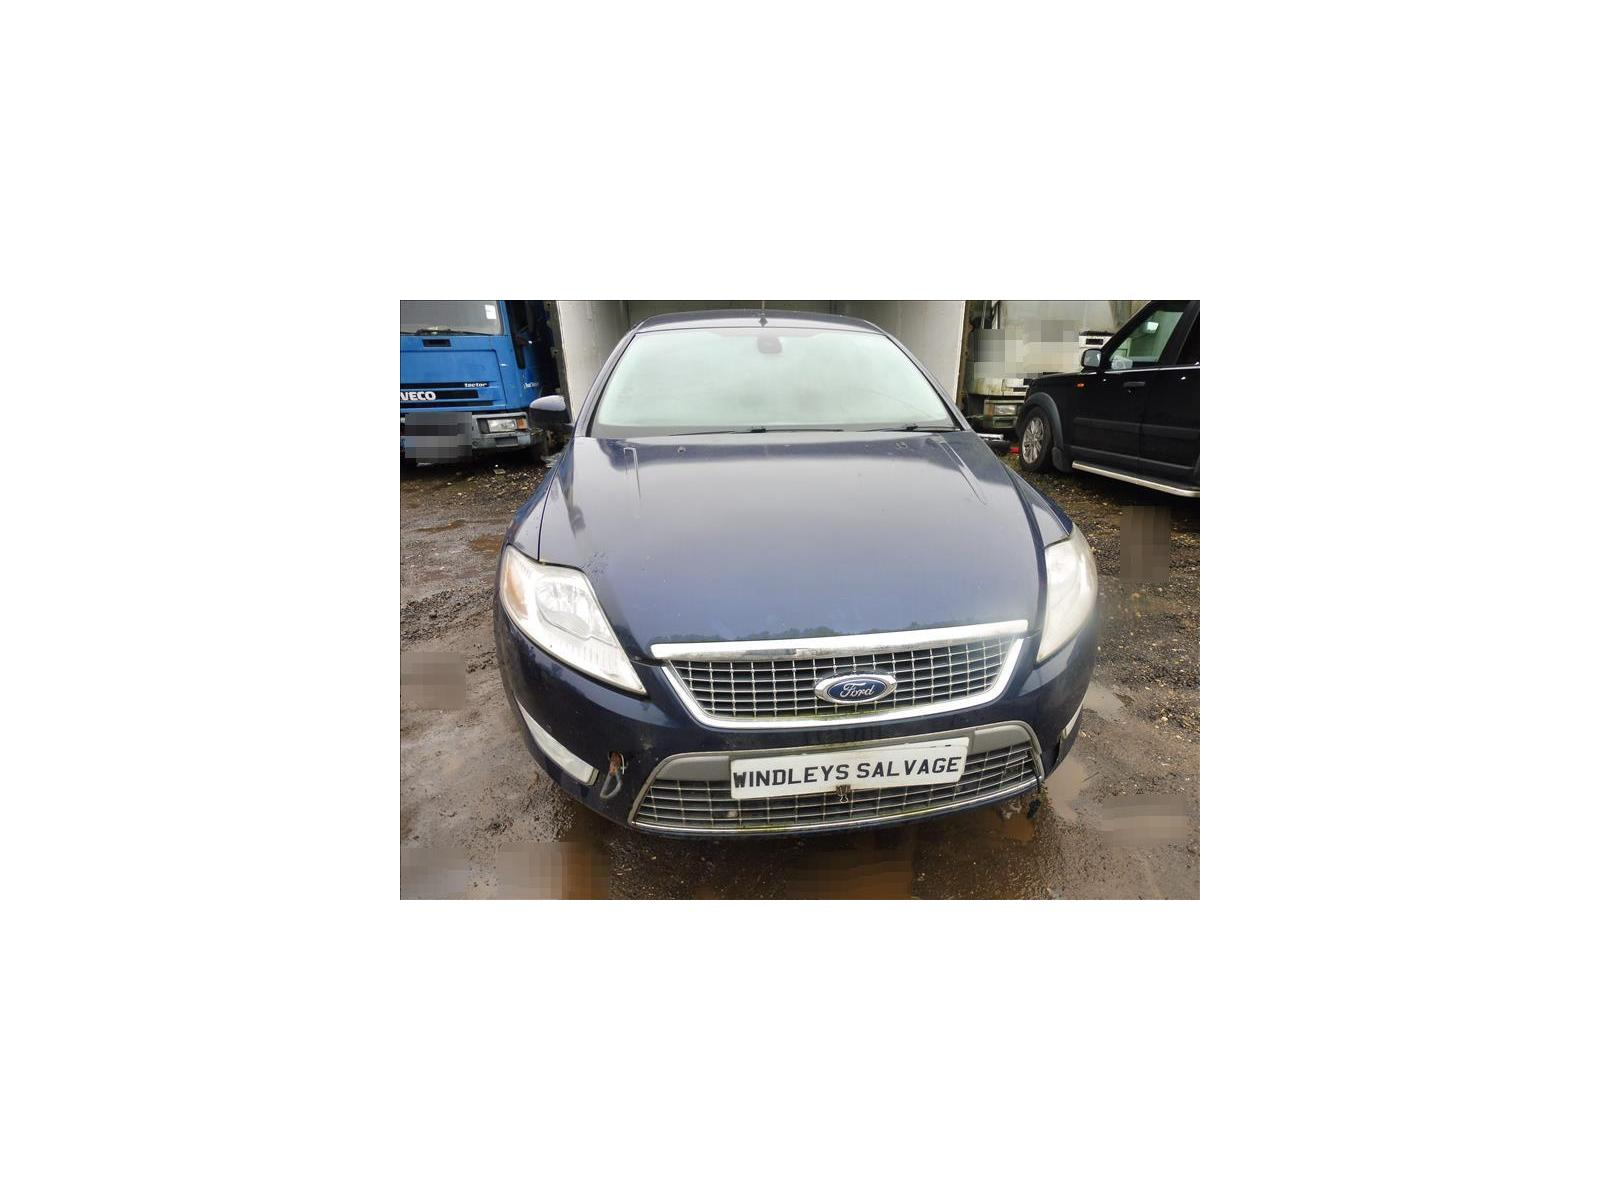 FORD MONDEO  P1080687